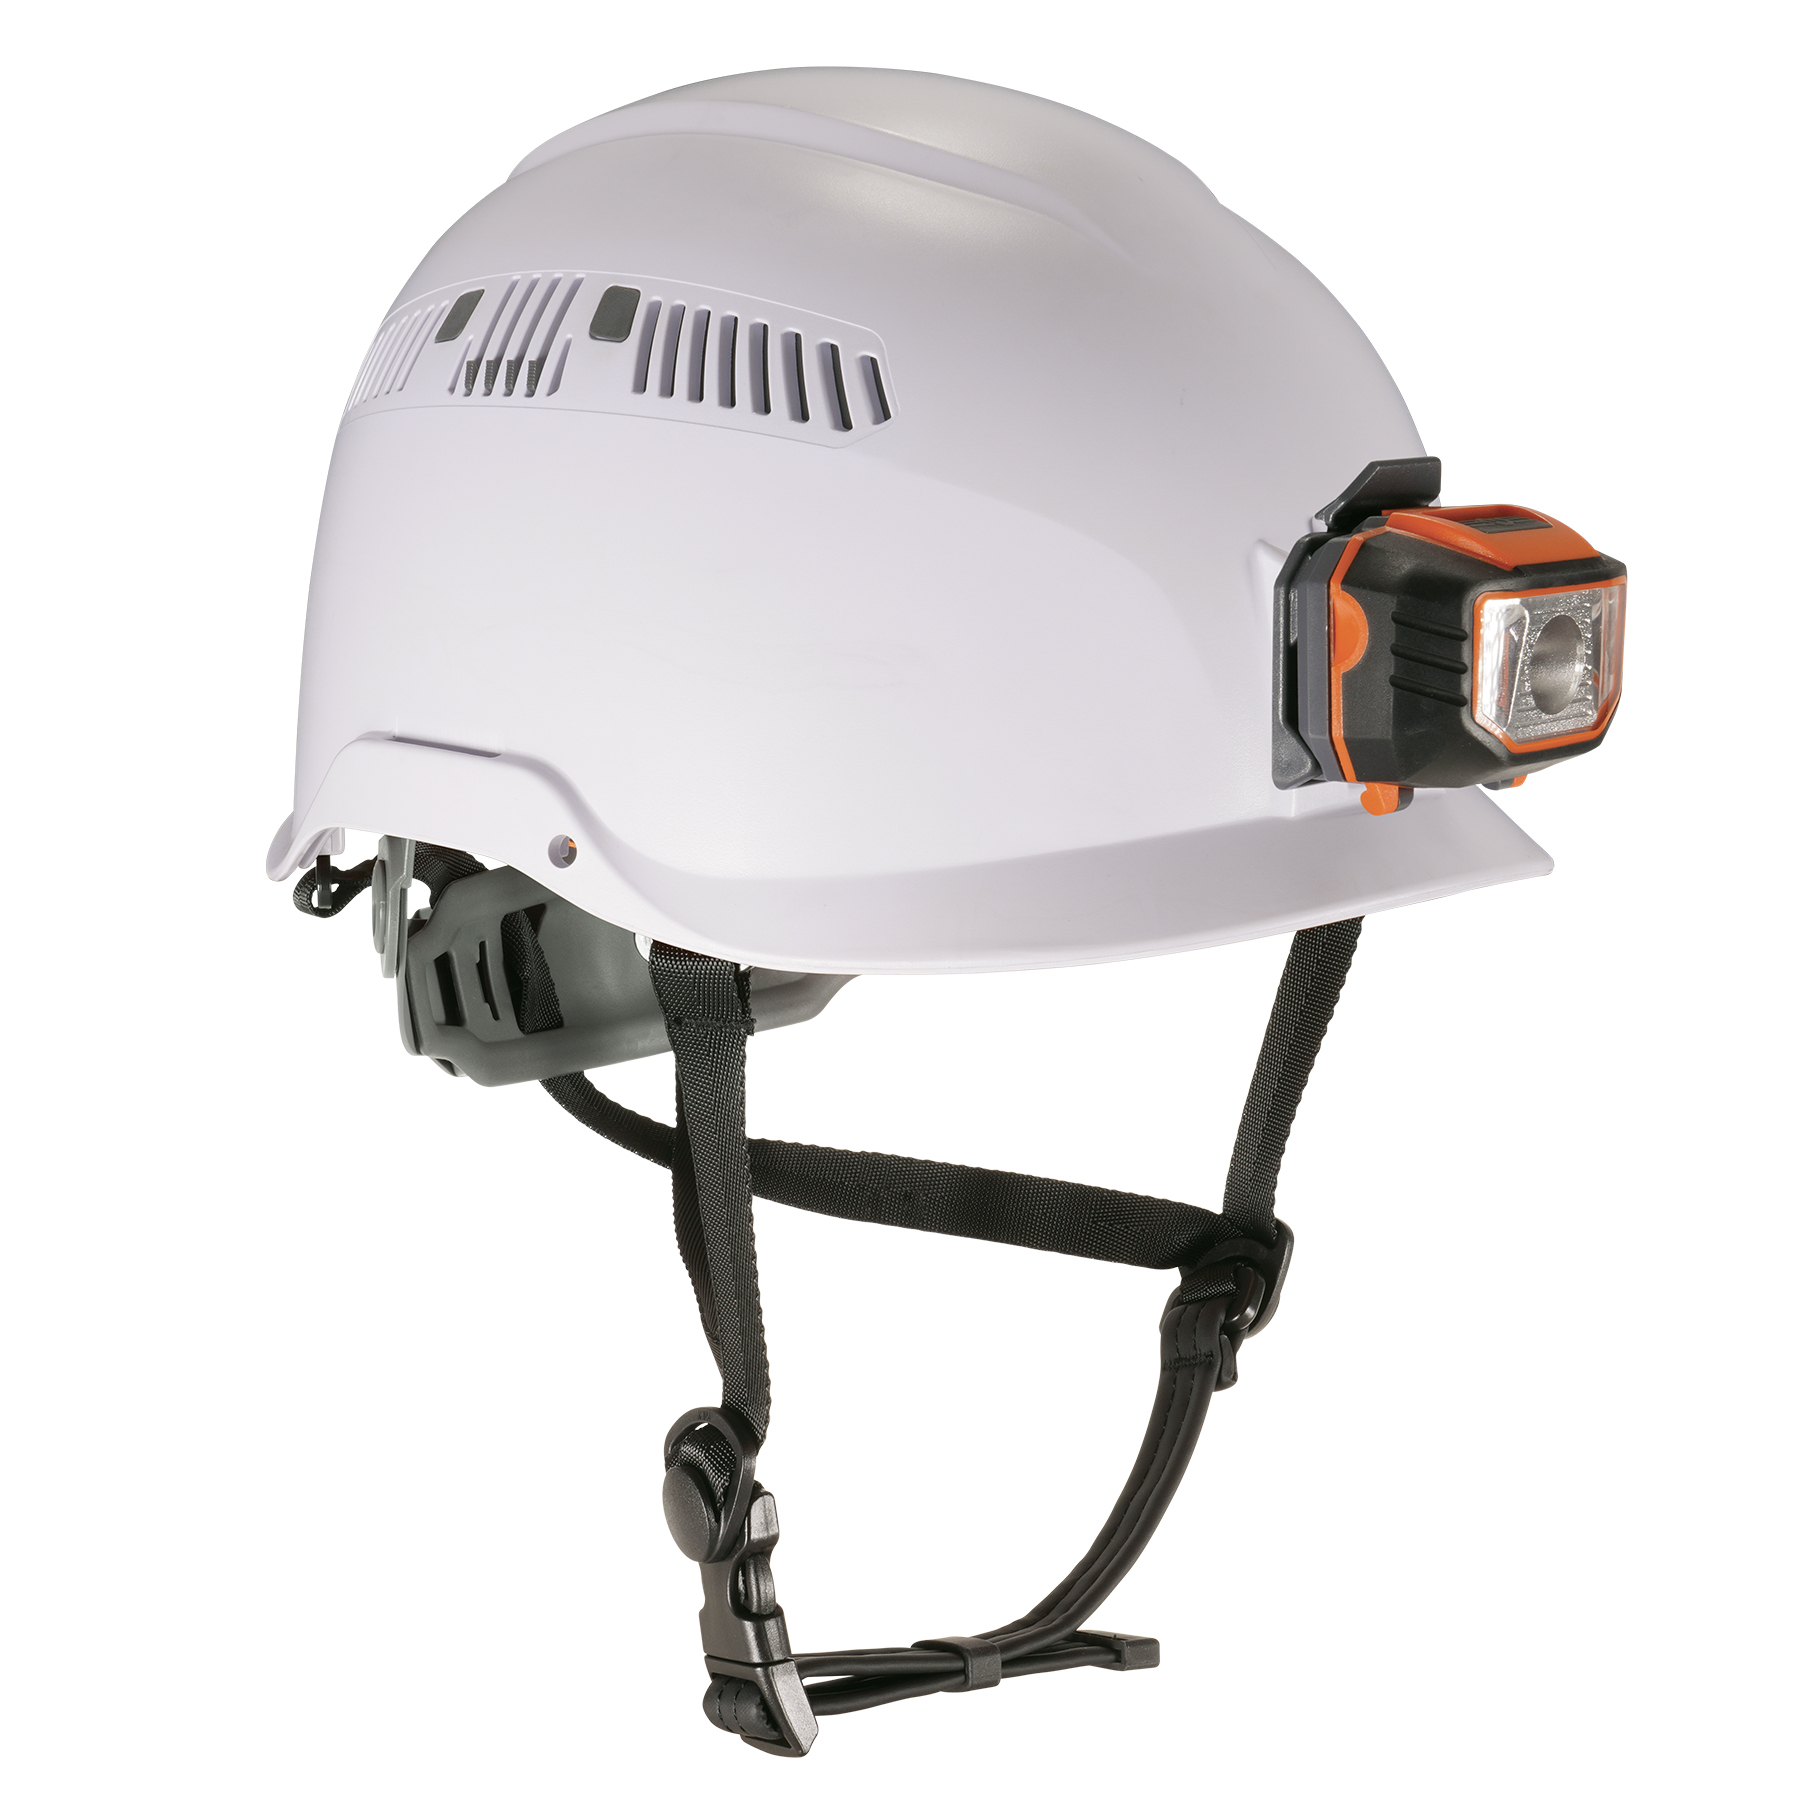 Skullerz 8975LED Class C Safety Helmet + LED Light